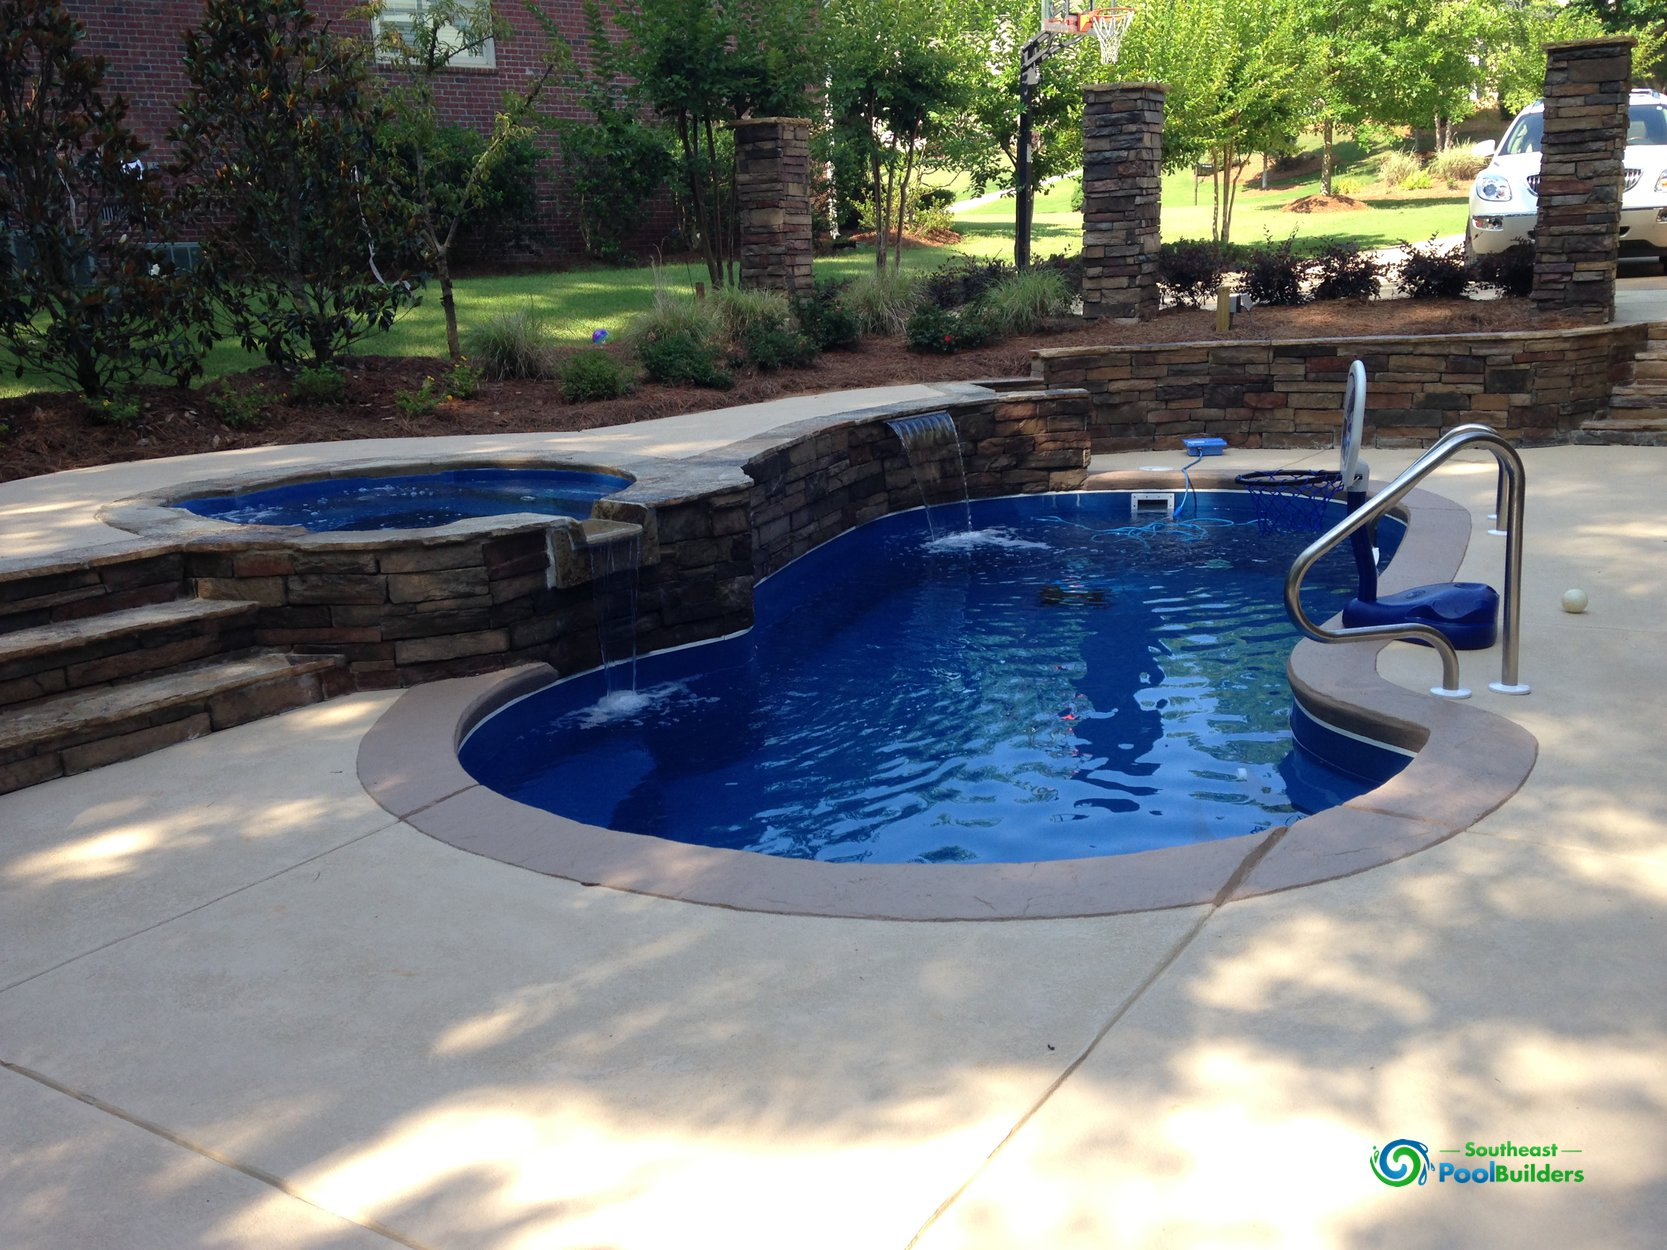 ... Concrete Pool #010 By Southeast Pool Builders ...